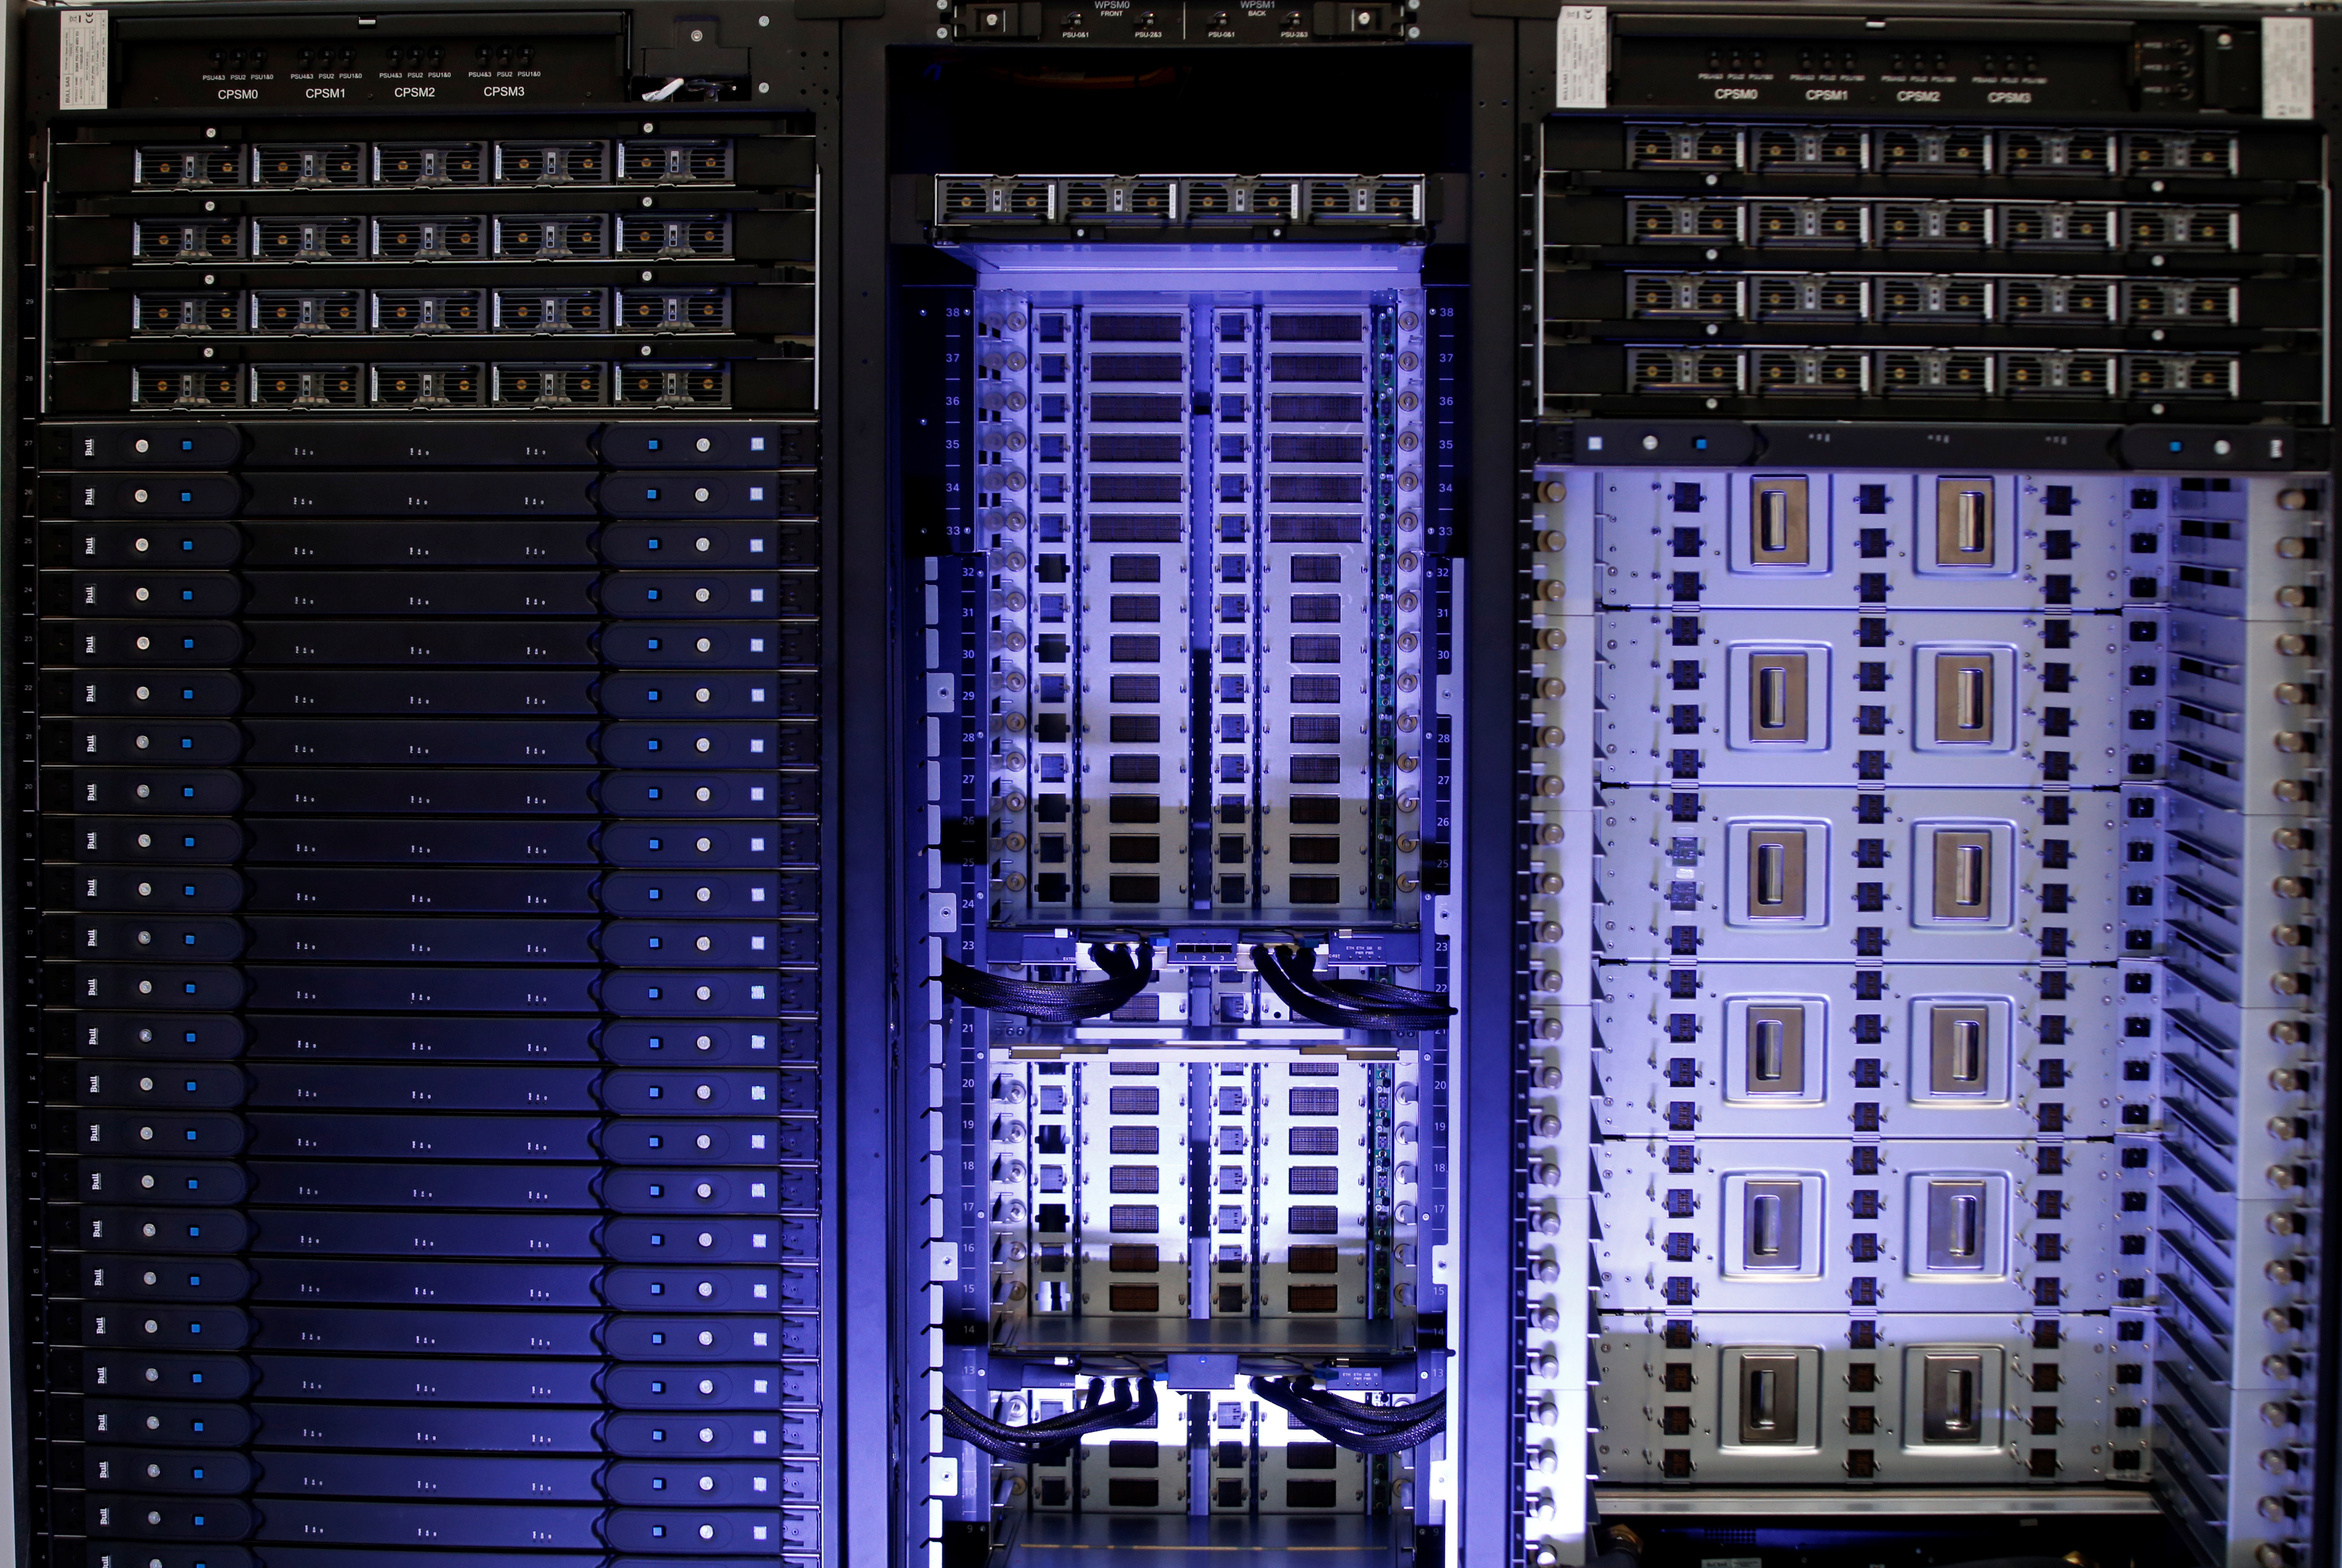 The new Bull sequana supercomputer is seen during presentation in Paris, France, April 12, 2016. REUTERS/Philippe Wojazer - D1AESYCOEZAA